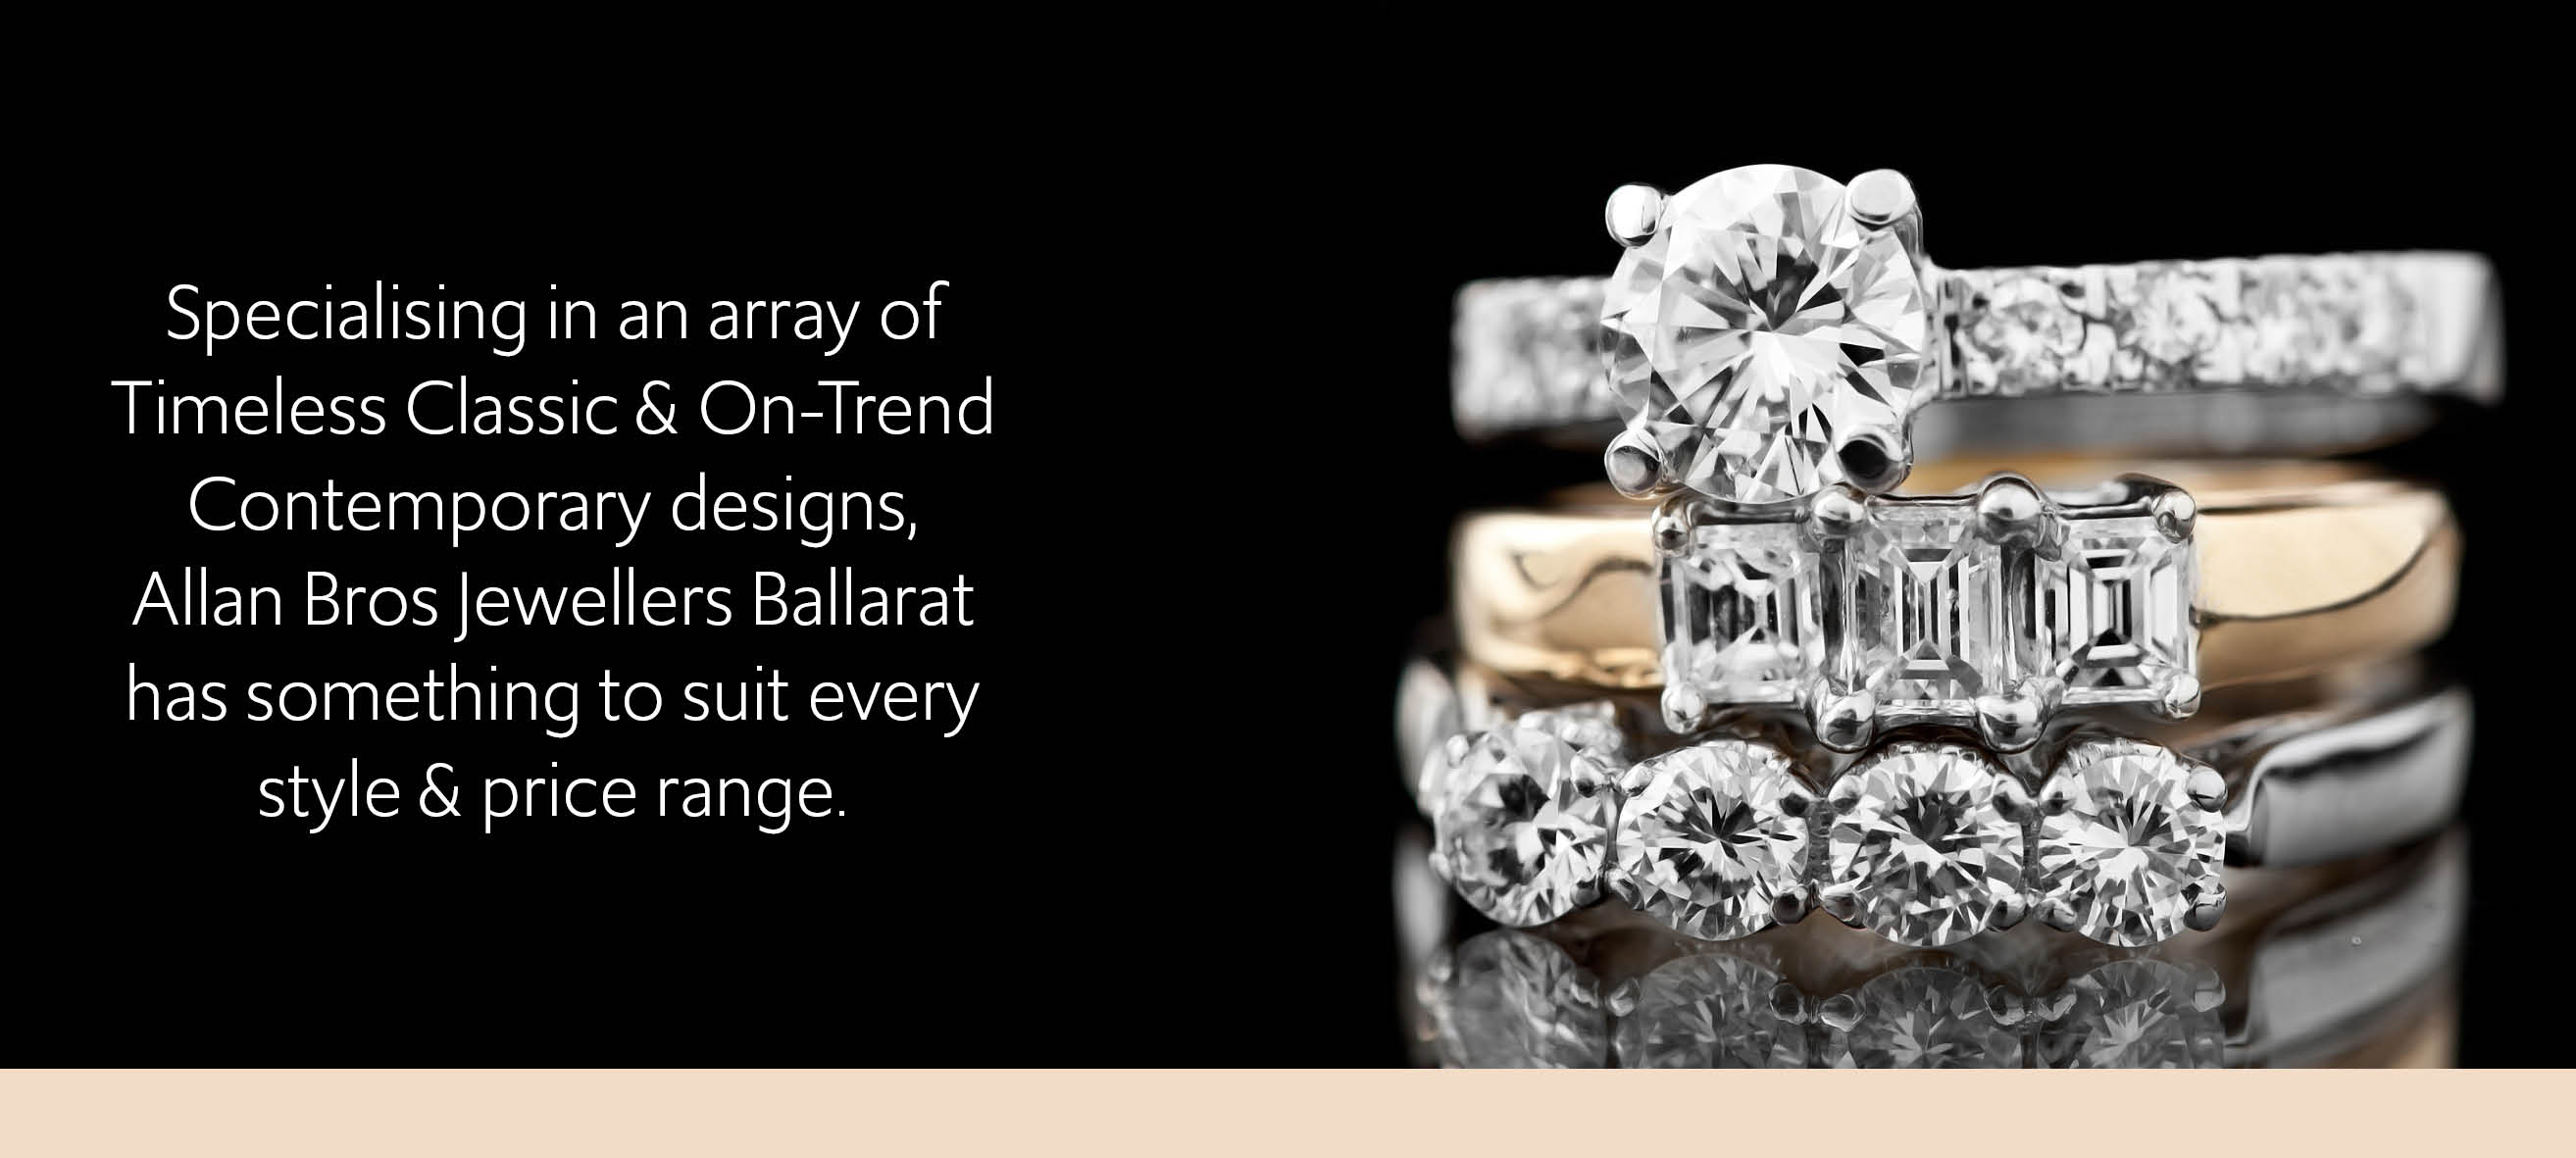 Allans Bros Jewellers Specialises in Timeless Classic & On-Trend Contemporary Designs